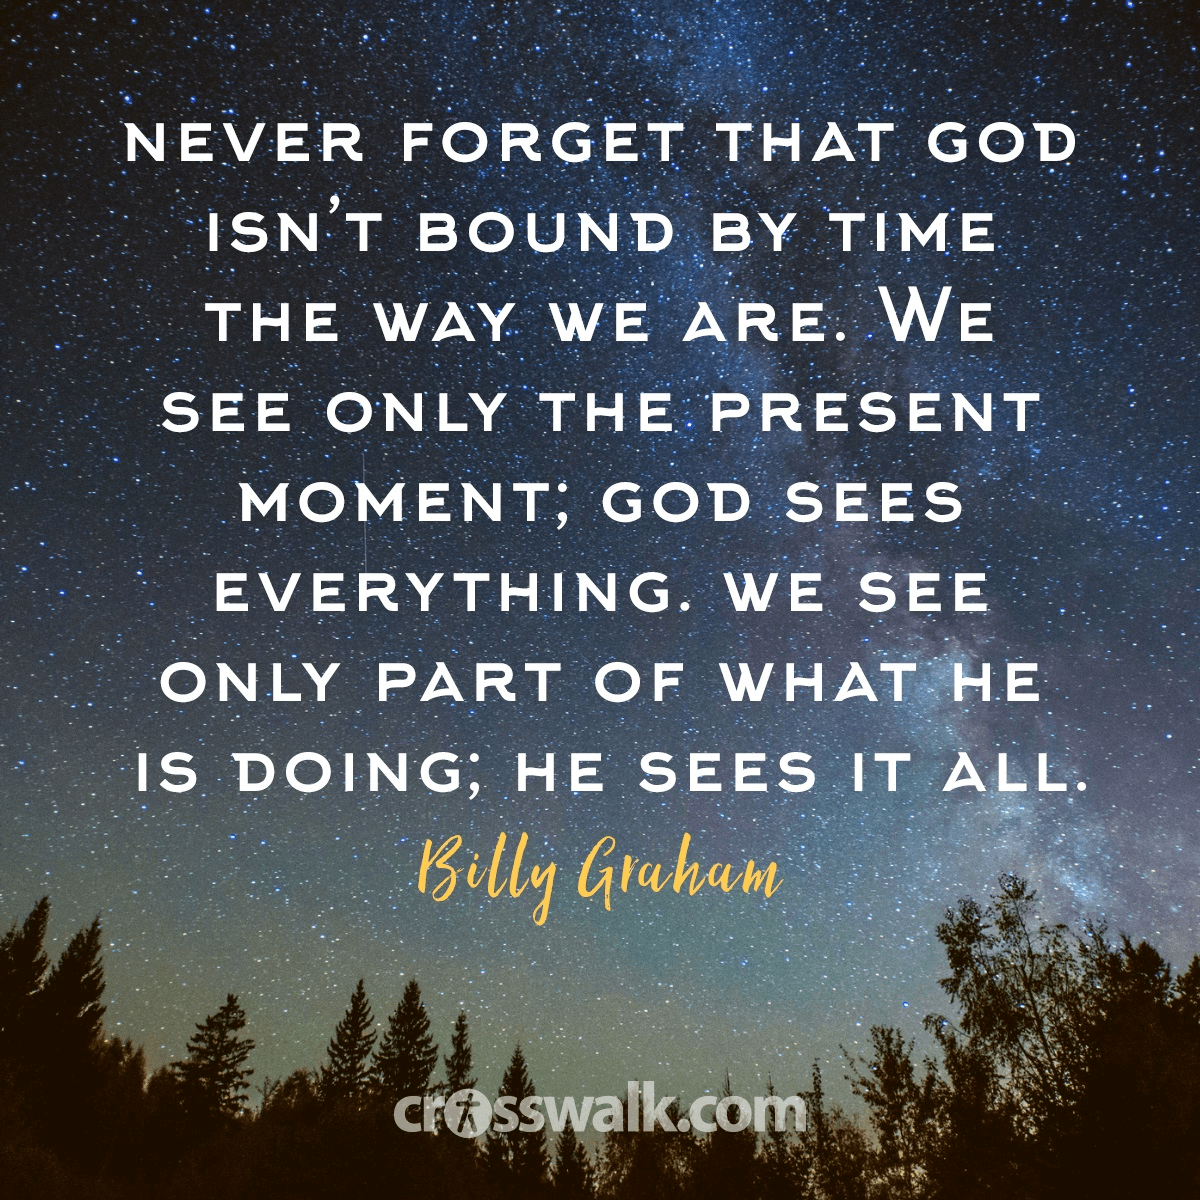 12 Inspiring Quotes About Prayer From Billy Graham